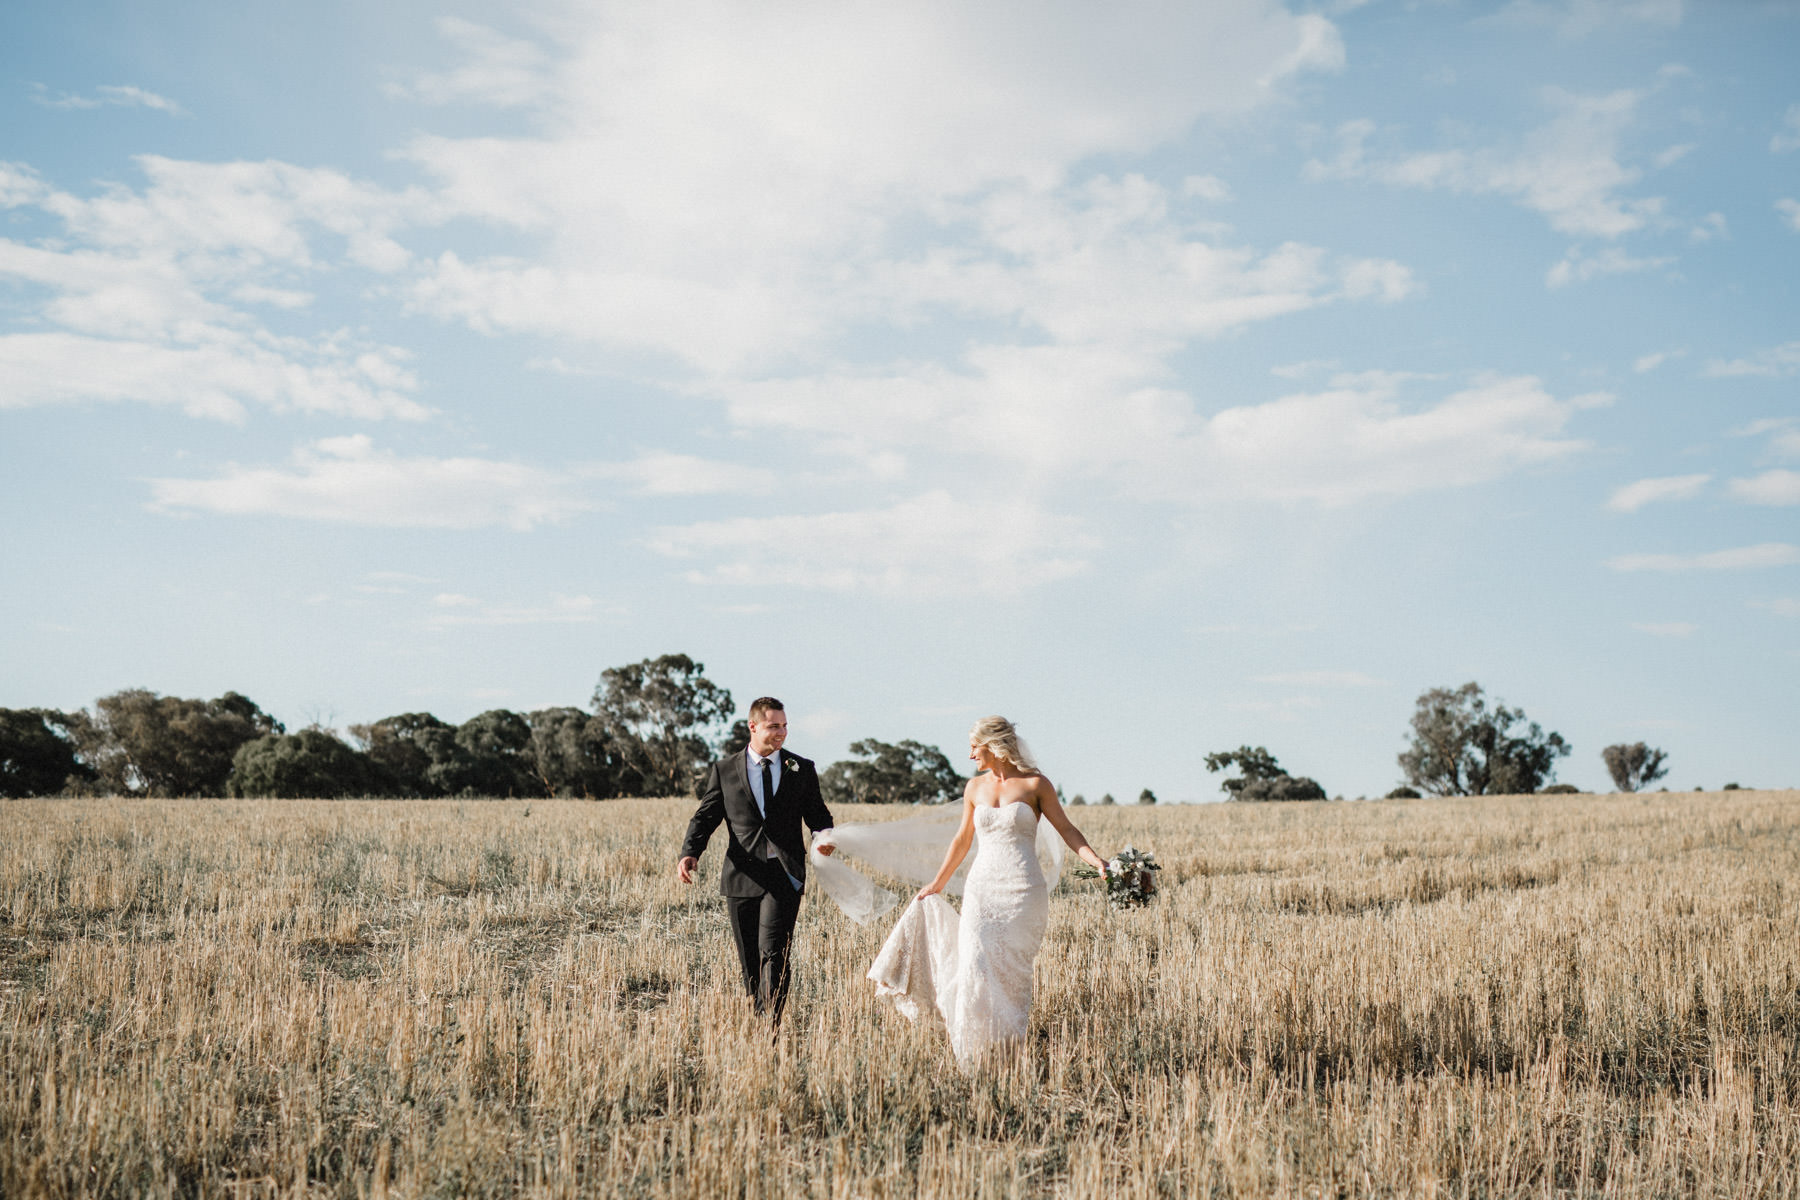 Country wedding, australian wedding, farm wedding, canberra wedshed, young, harden, bowral wedding photographer, bride and groom, cane field